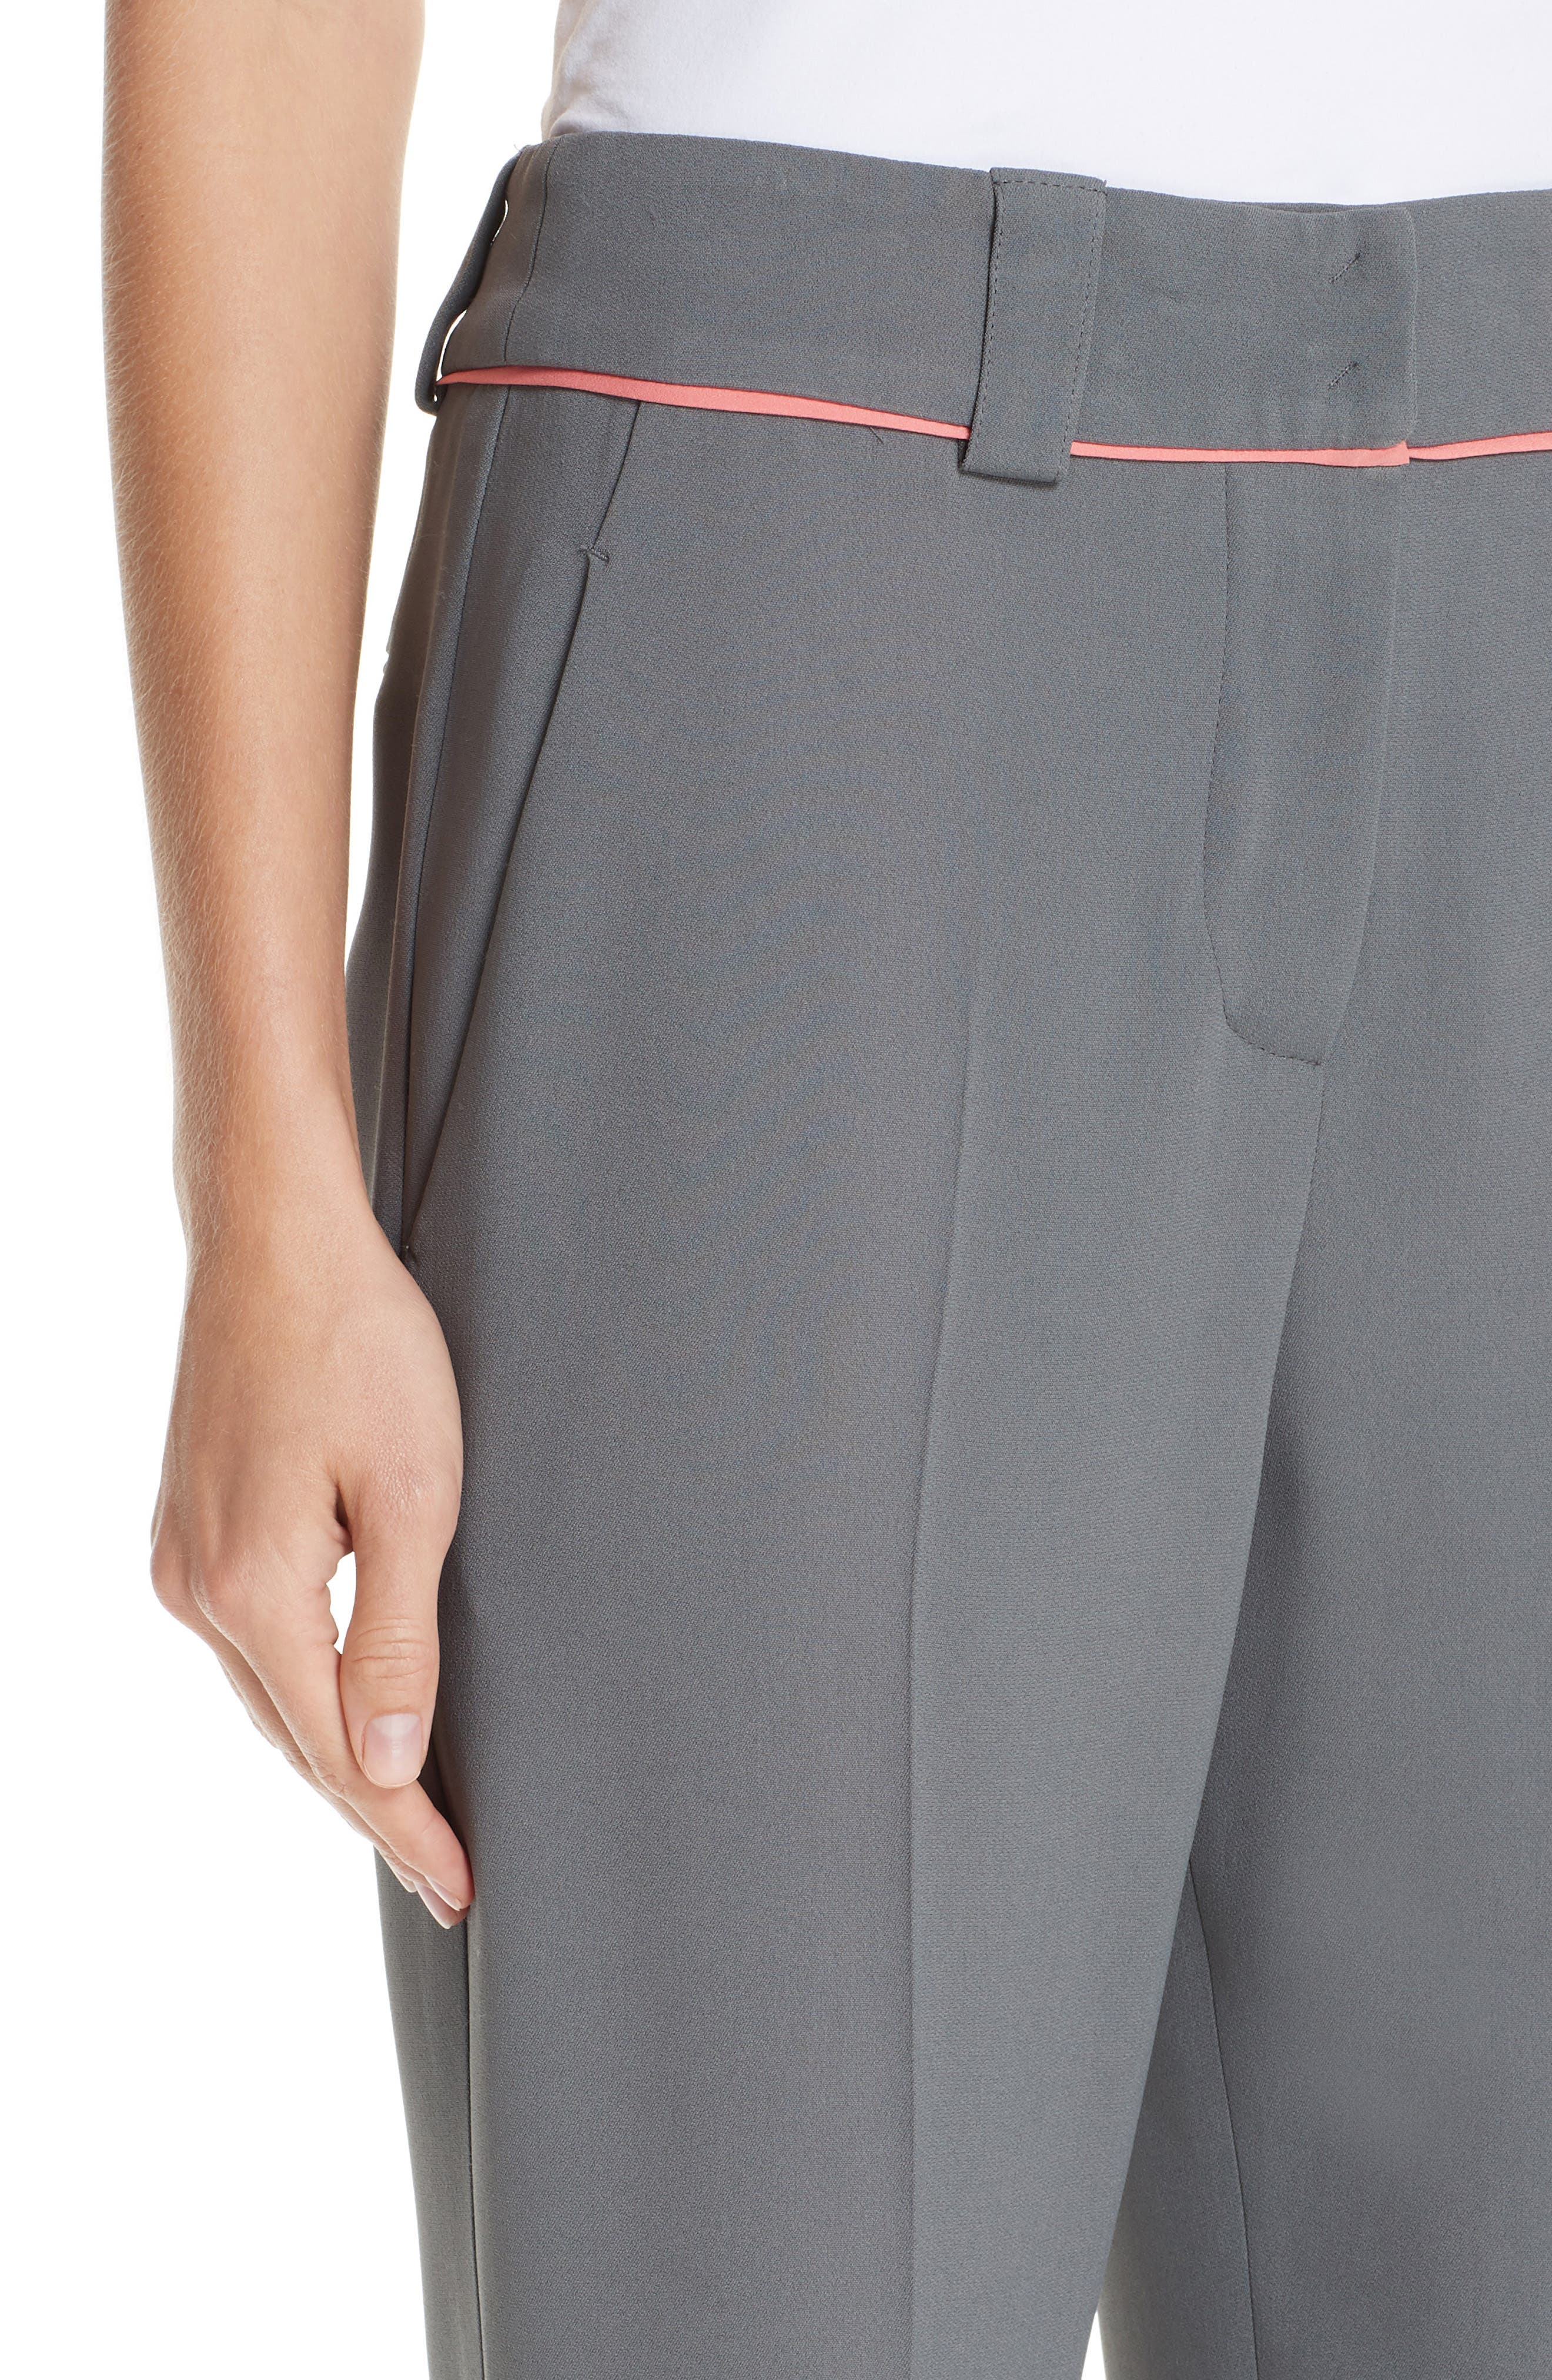 Piped Ankle Pants,                             Alternate thumbnail 4, color,                             ROCCIA